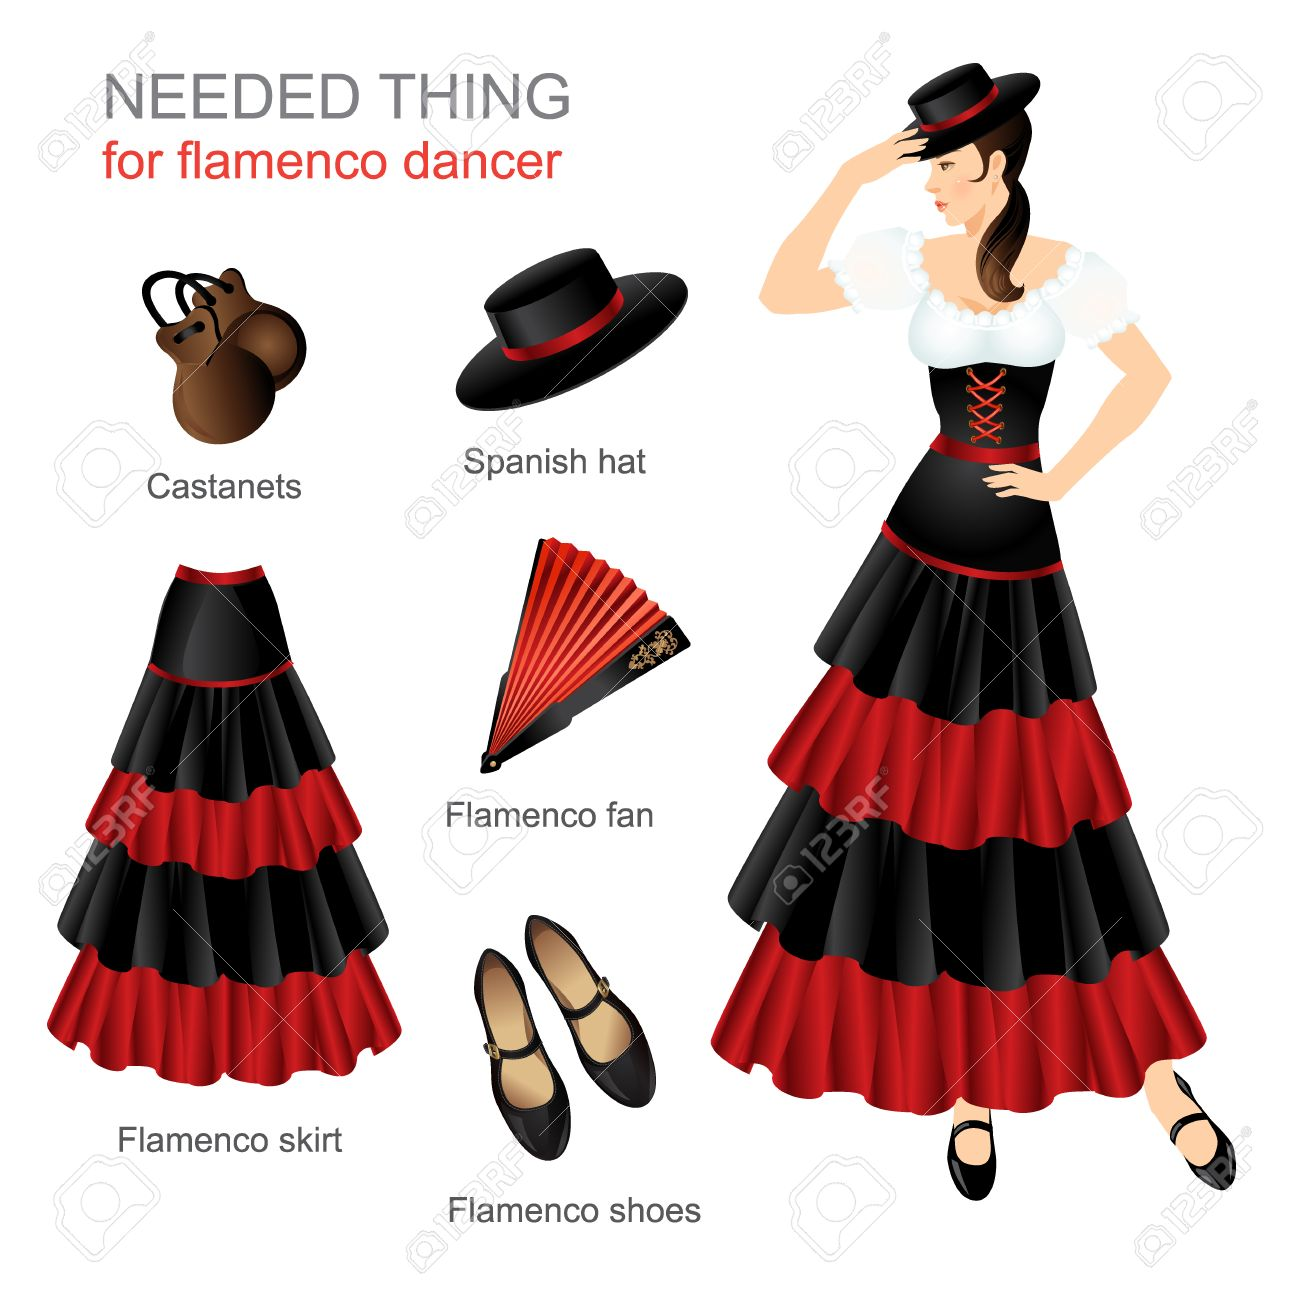 c2c36392ede5 Needed thing for flamenco dancer. Woman in spanish costume. Women dress hat  on head